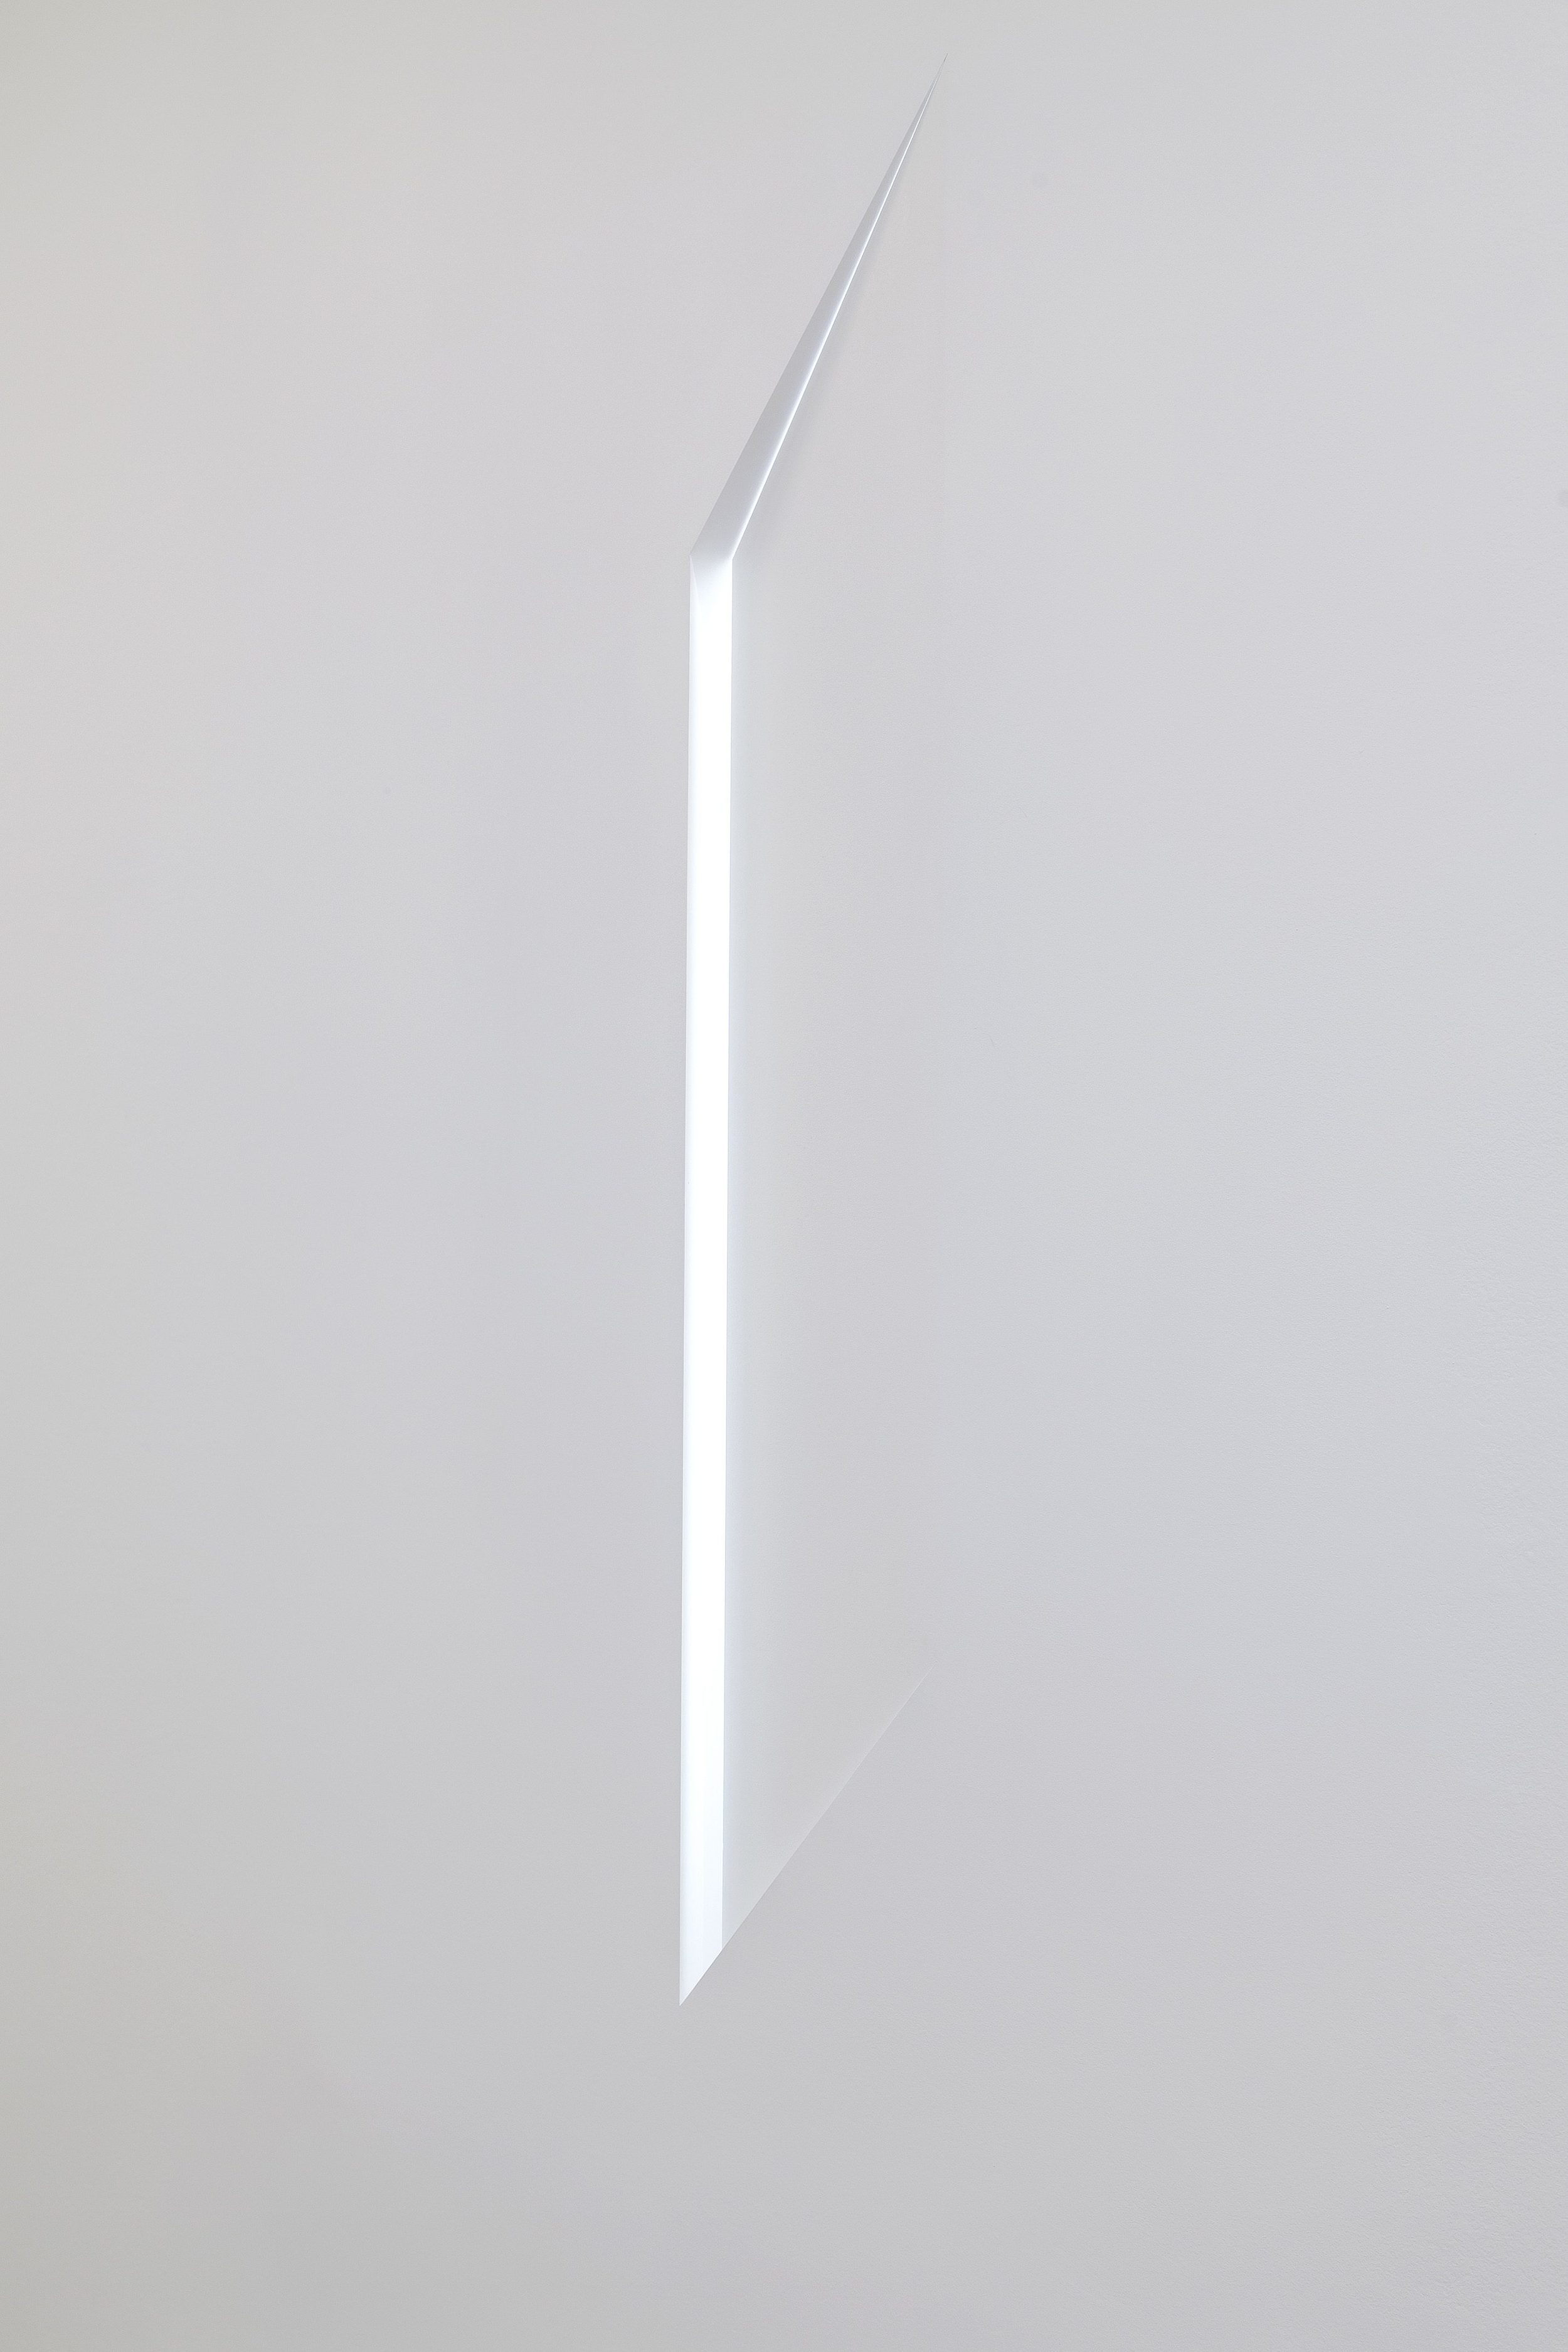 Disclosed Light. Installation constructed into existing wall, revealing and bringing the daylight from a hidden window behind the wall into the galleryspace.